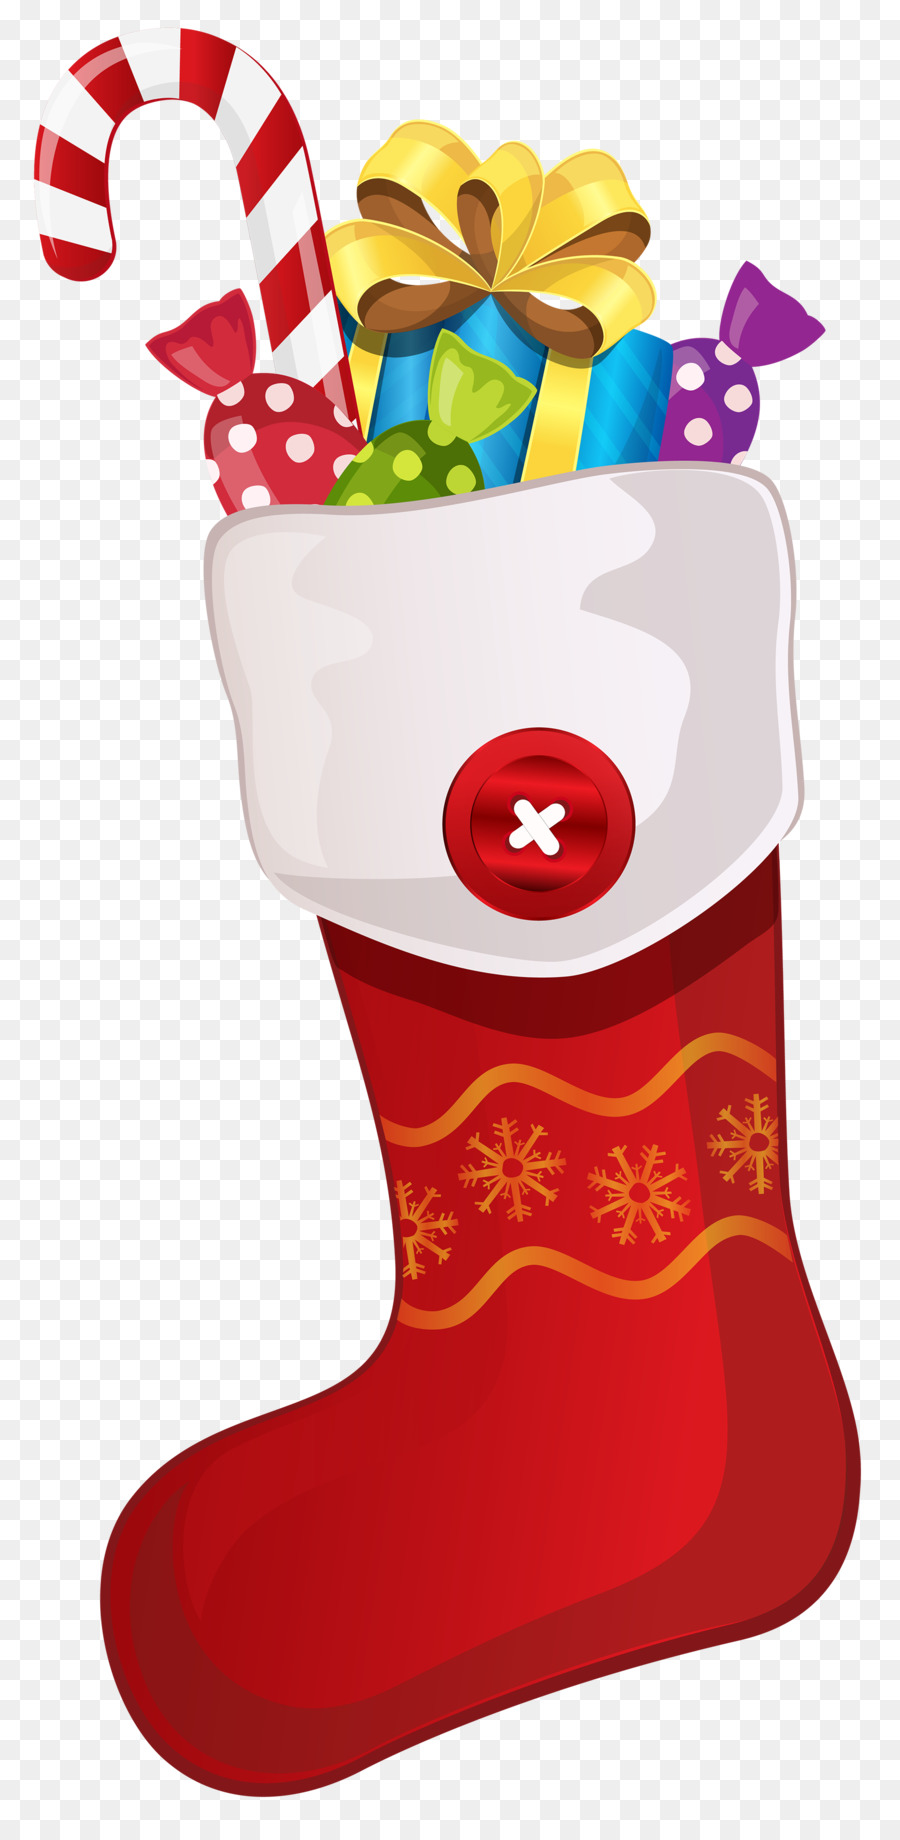 Candy cane Christmas Stockings Clip art.